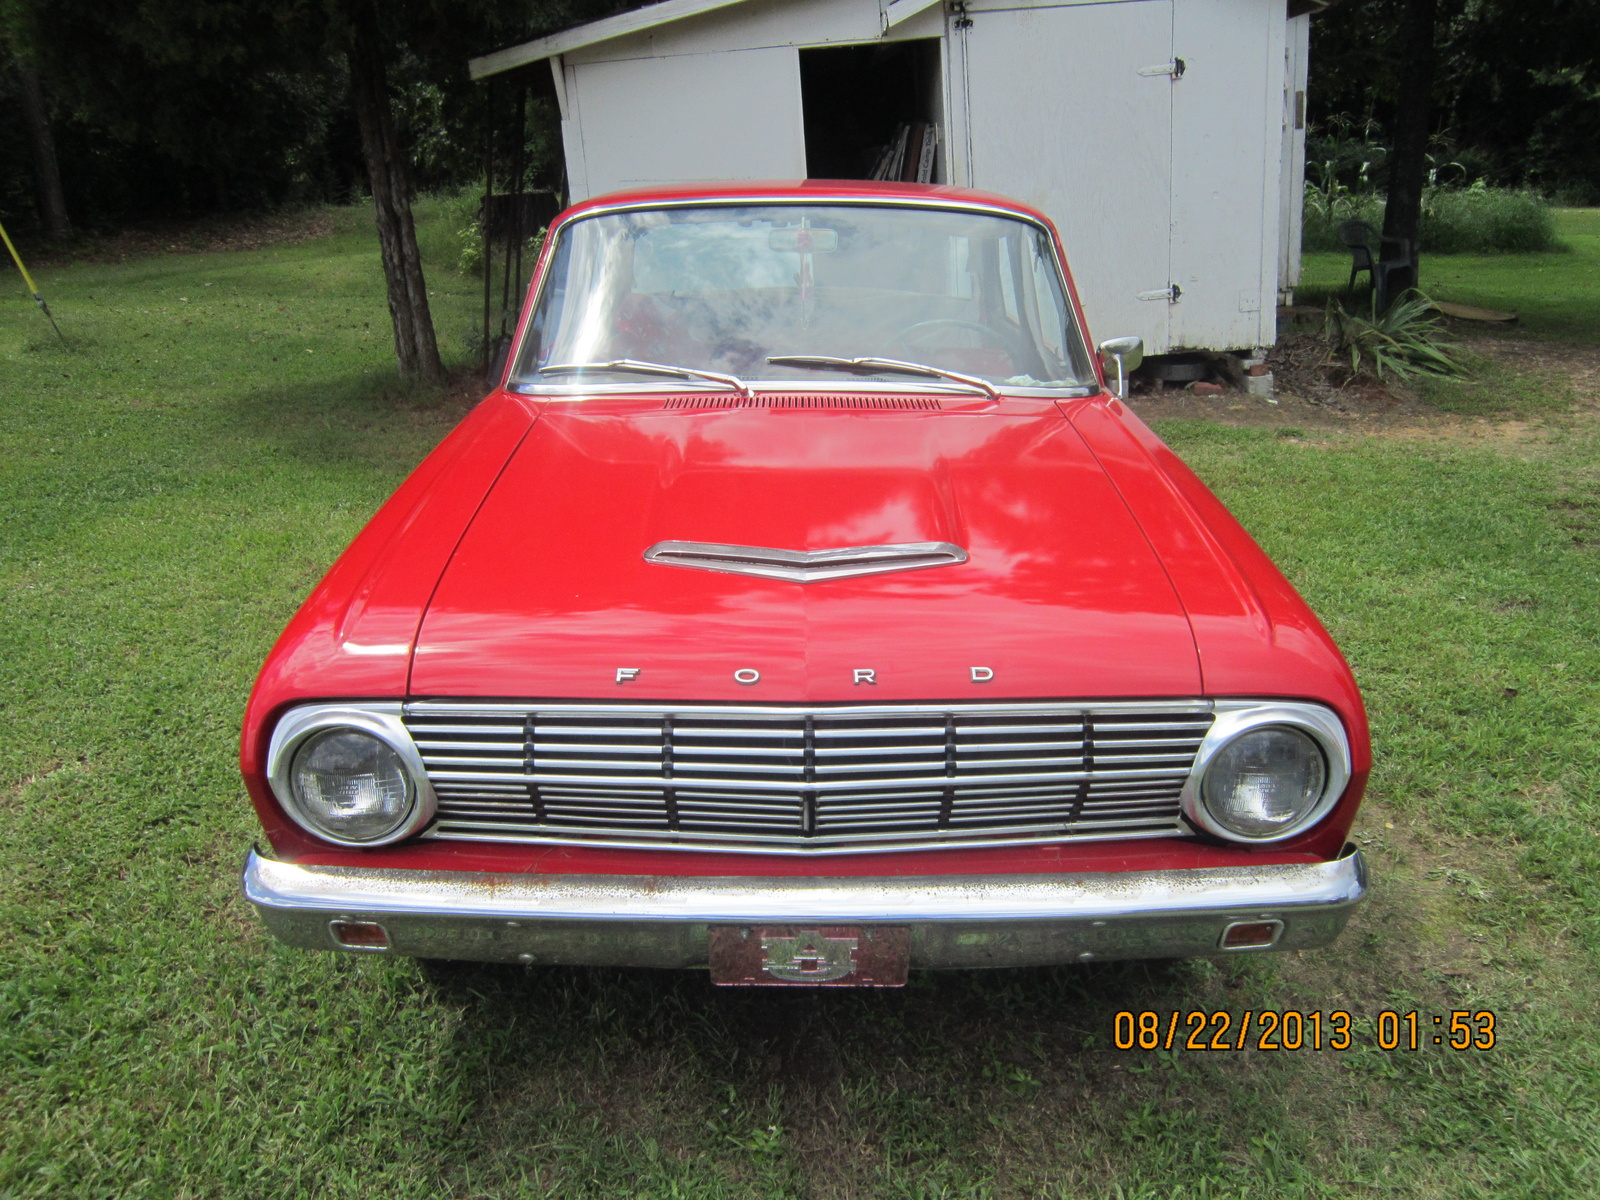 1963 Ford Falcon Sprint moreover 1963 Ford Falcon Futura Sprint in addition 1965 Ford Falcon Sprint Convertible together with 1963 Ford Falcon likewise Ford Gran Torino. on 1963 ford falcon sprint convertible for sale